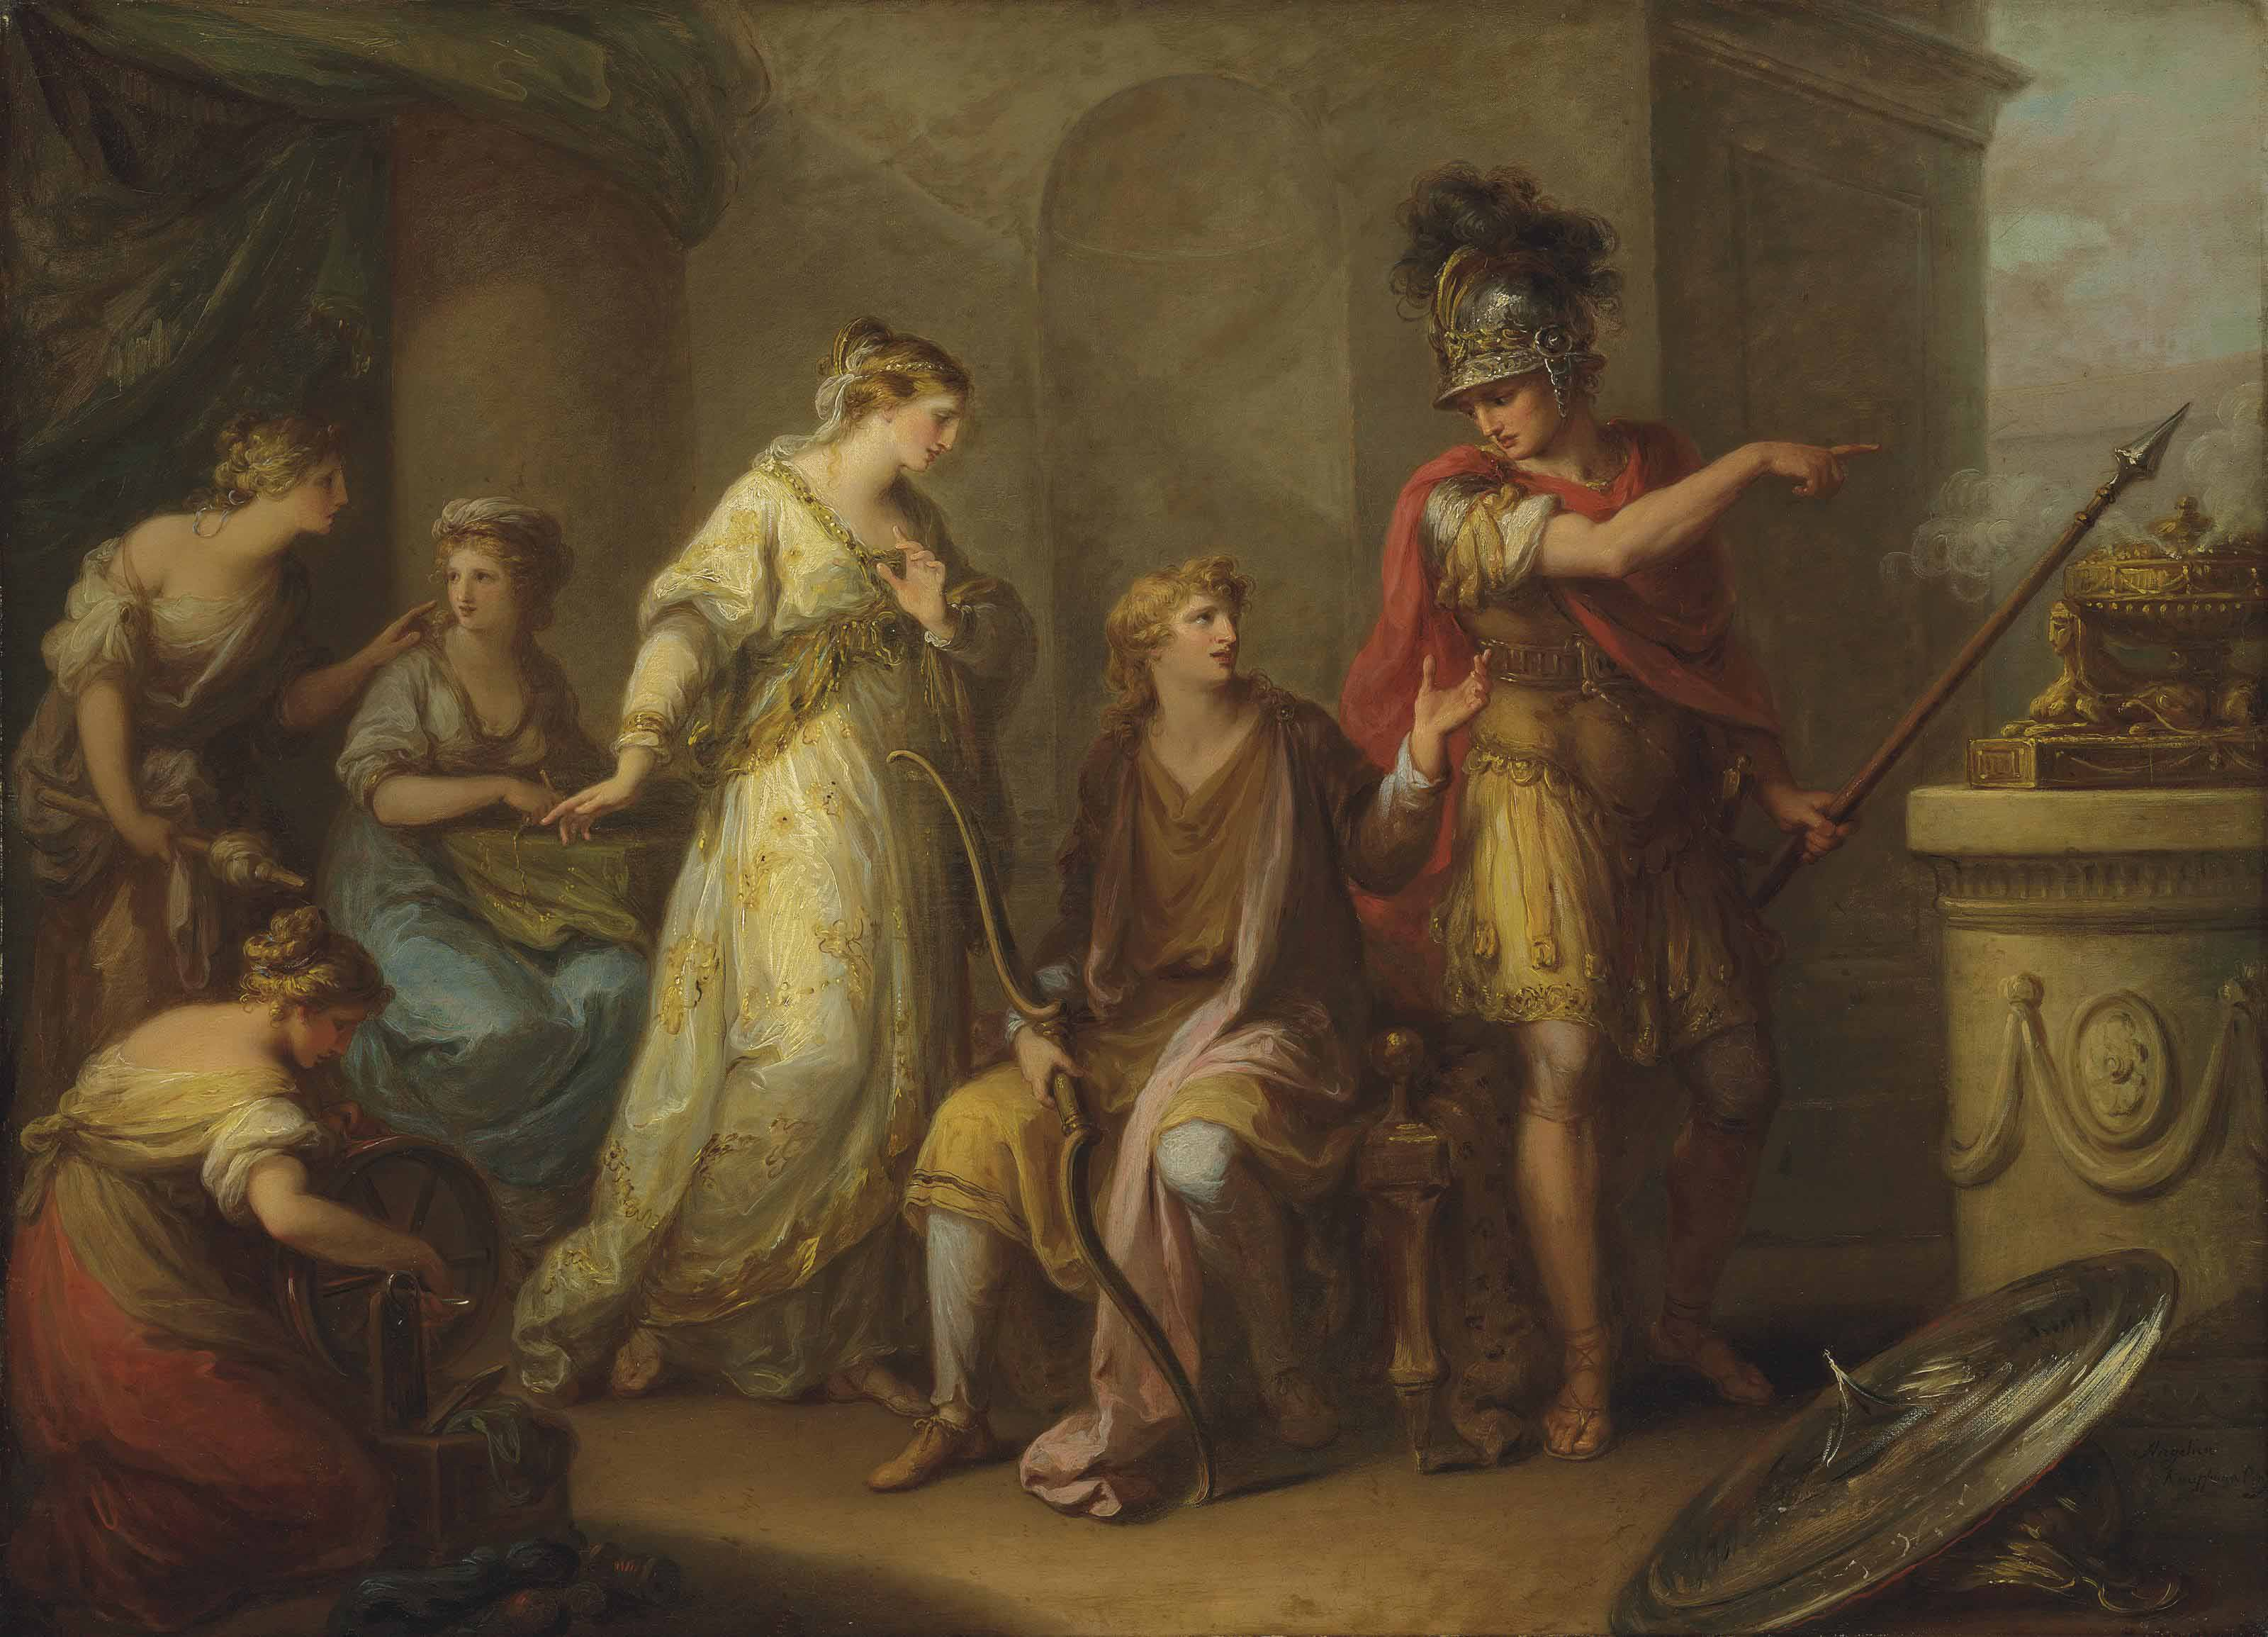 Hector upbraiding Paris for his retreat from battle